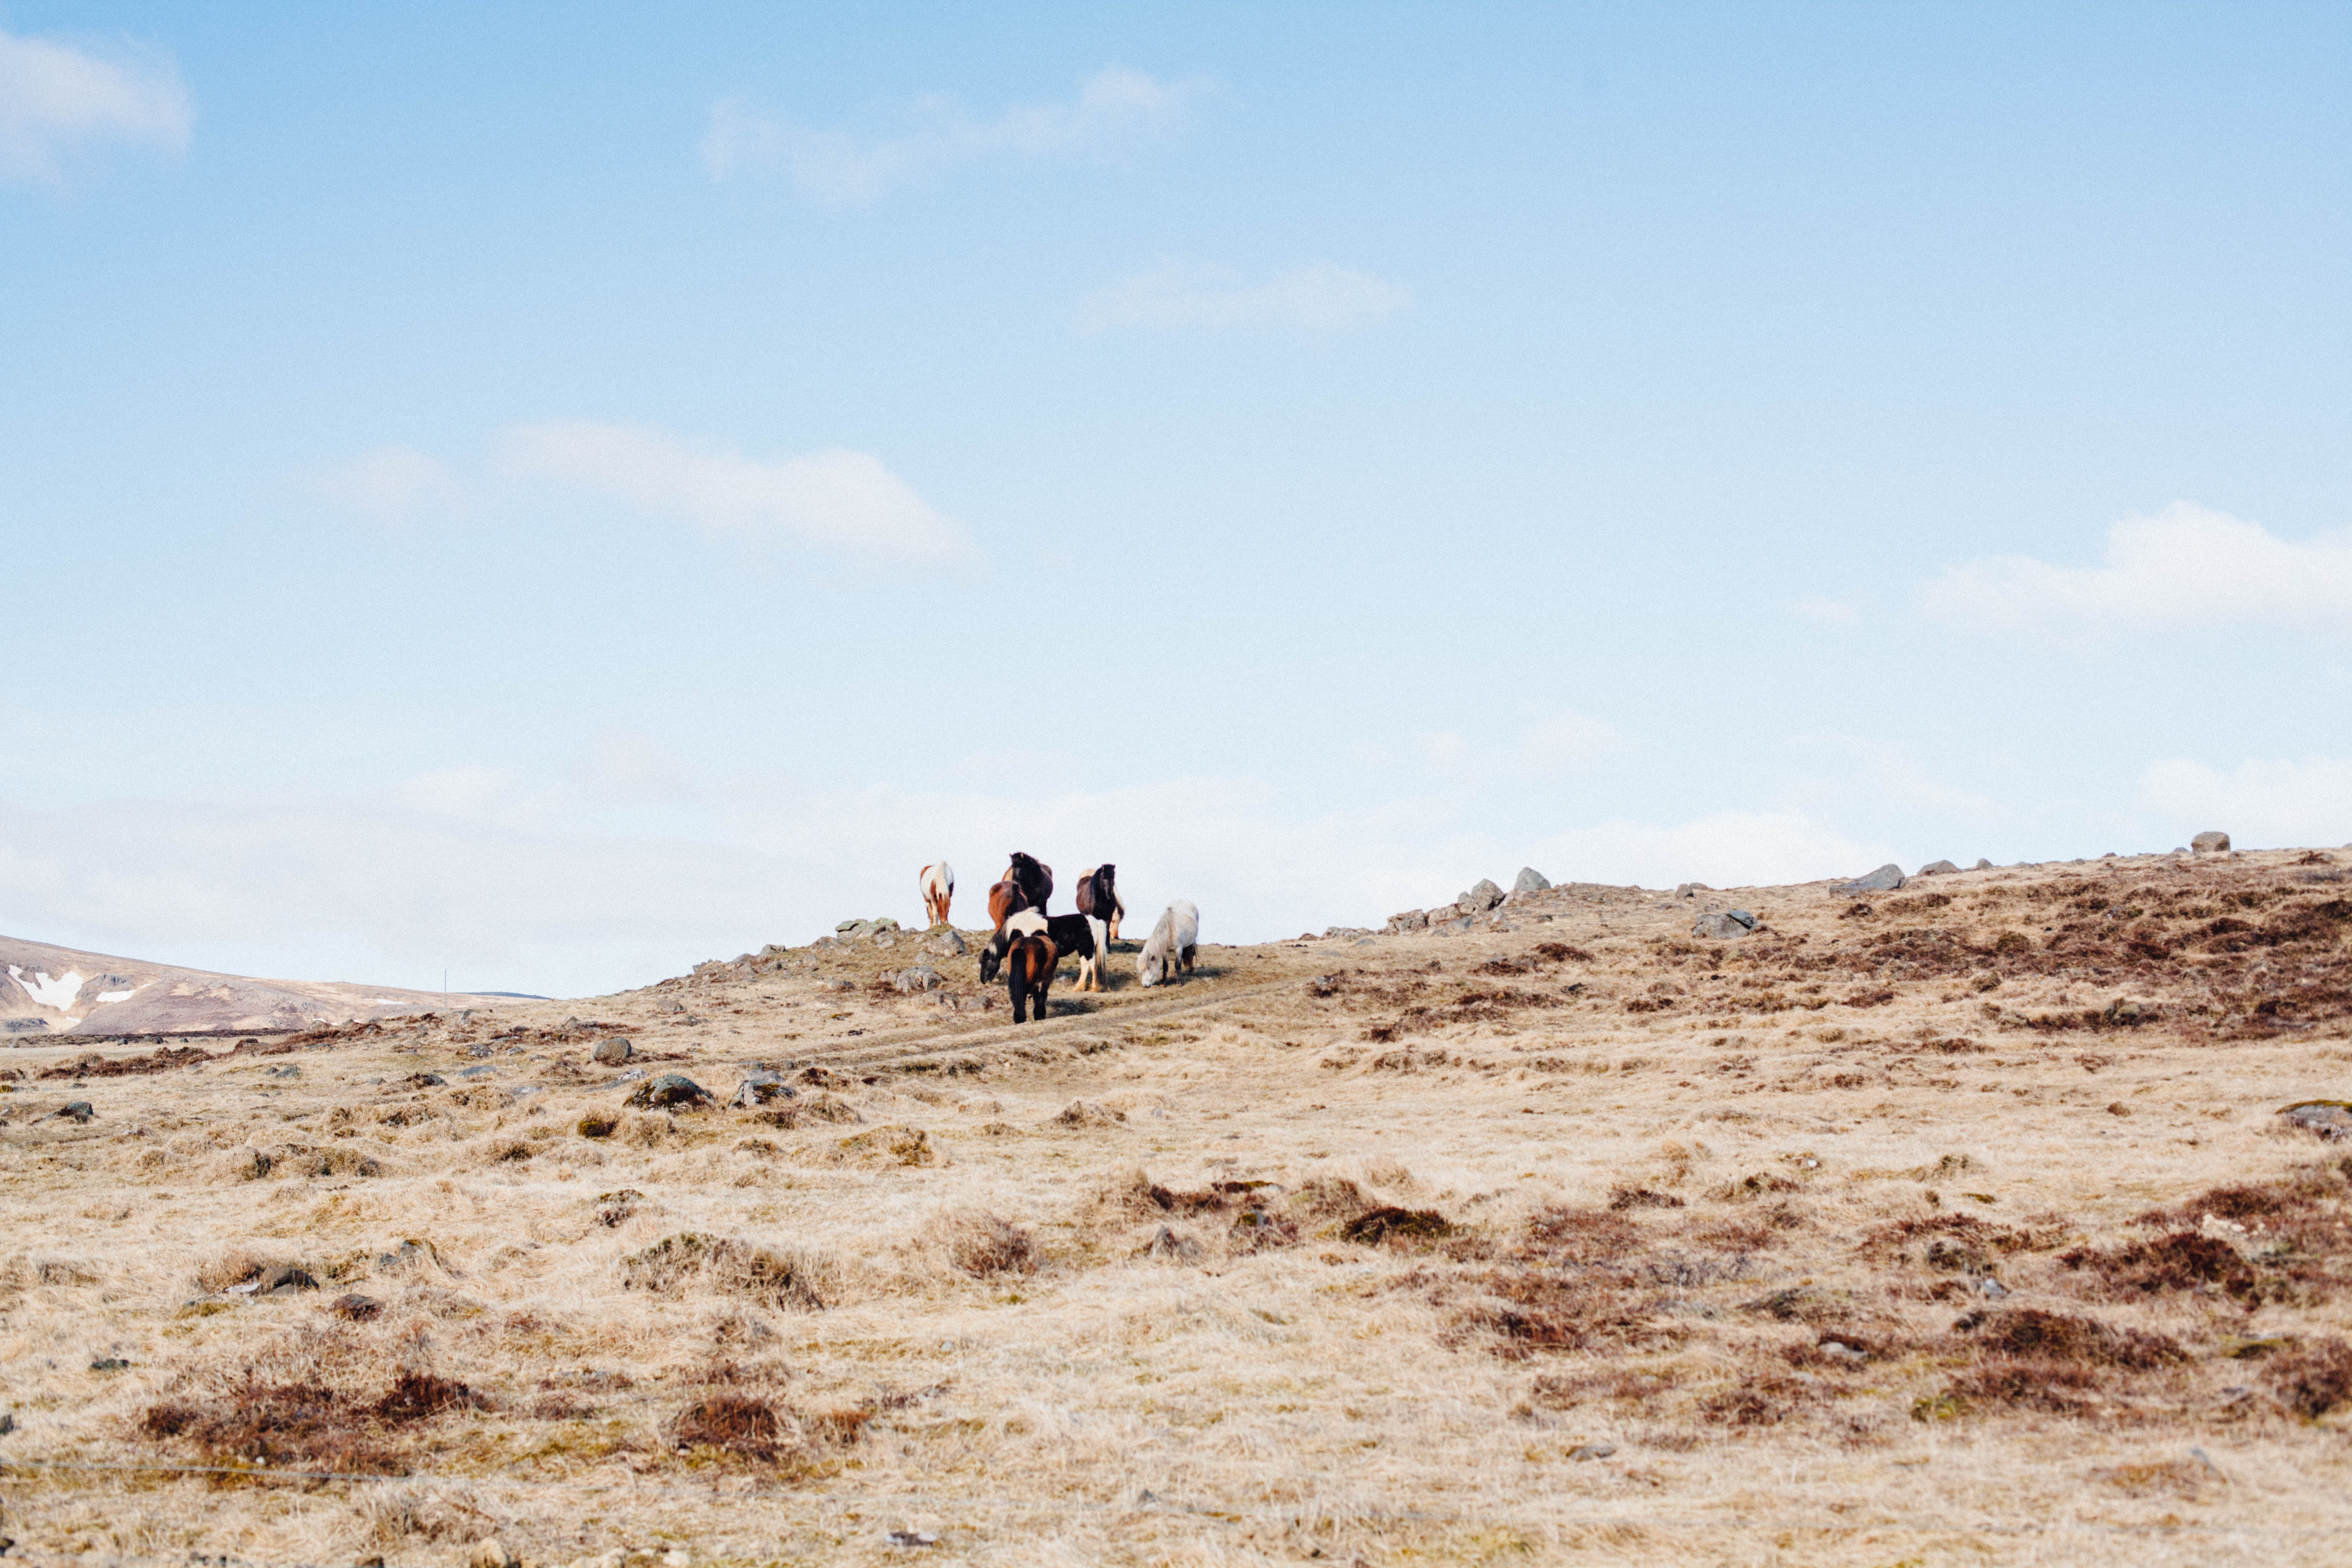 A distant shot of a group of ponies on a rocky plain